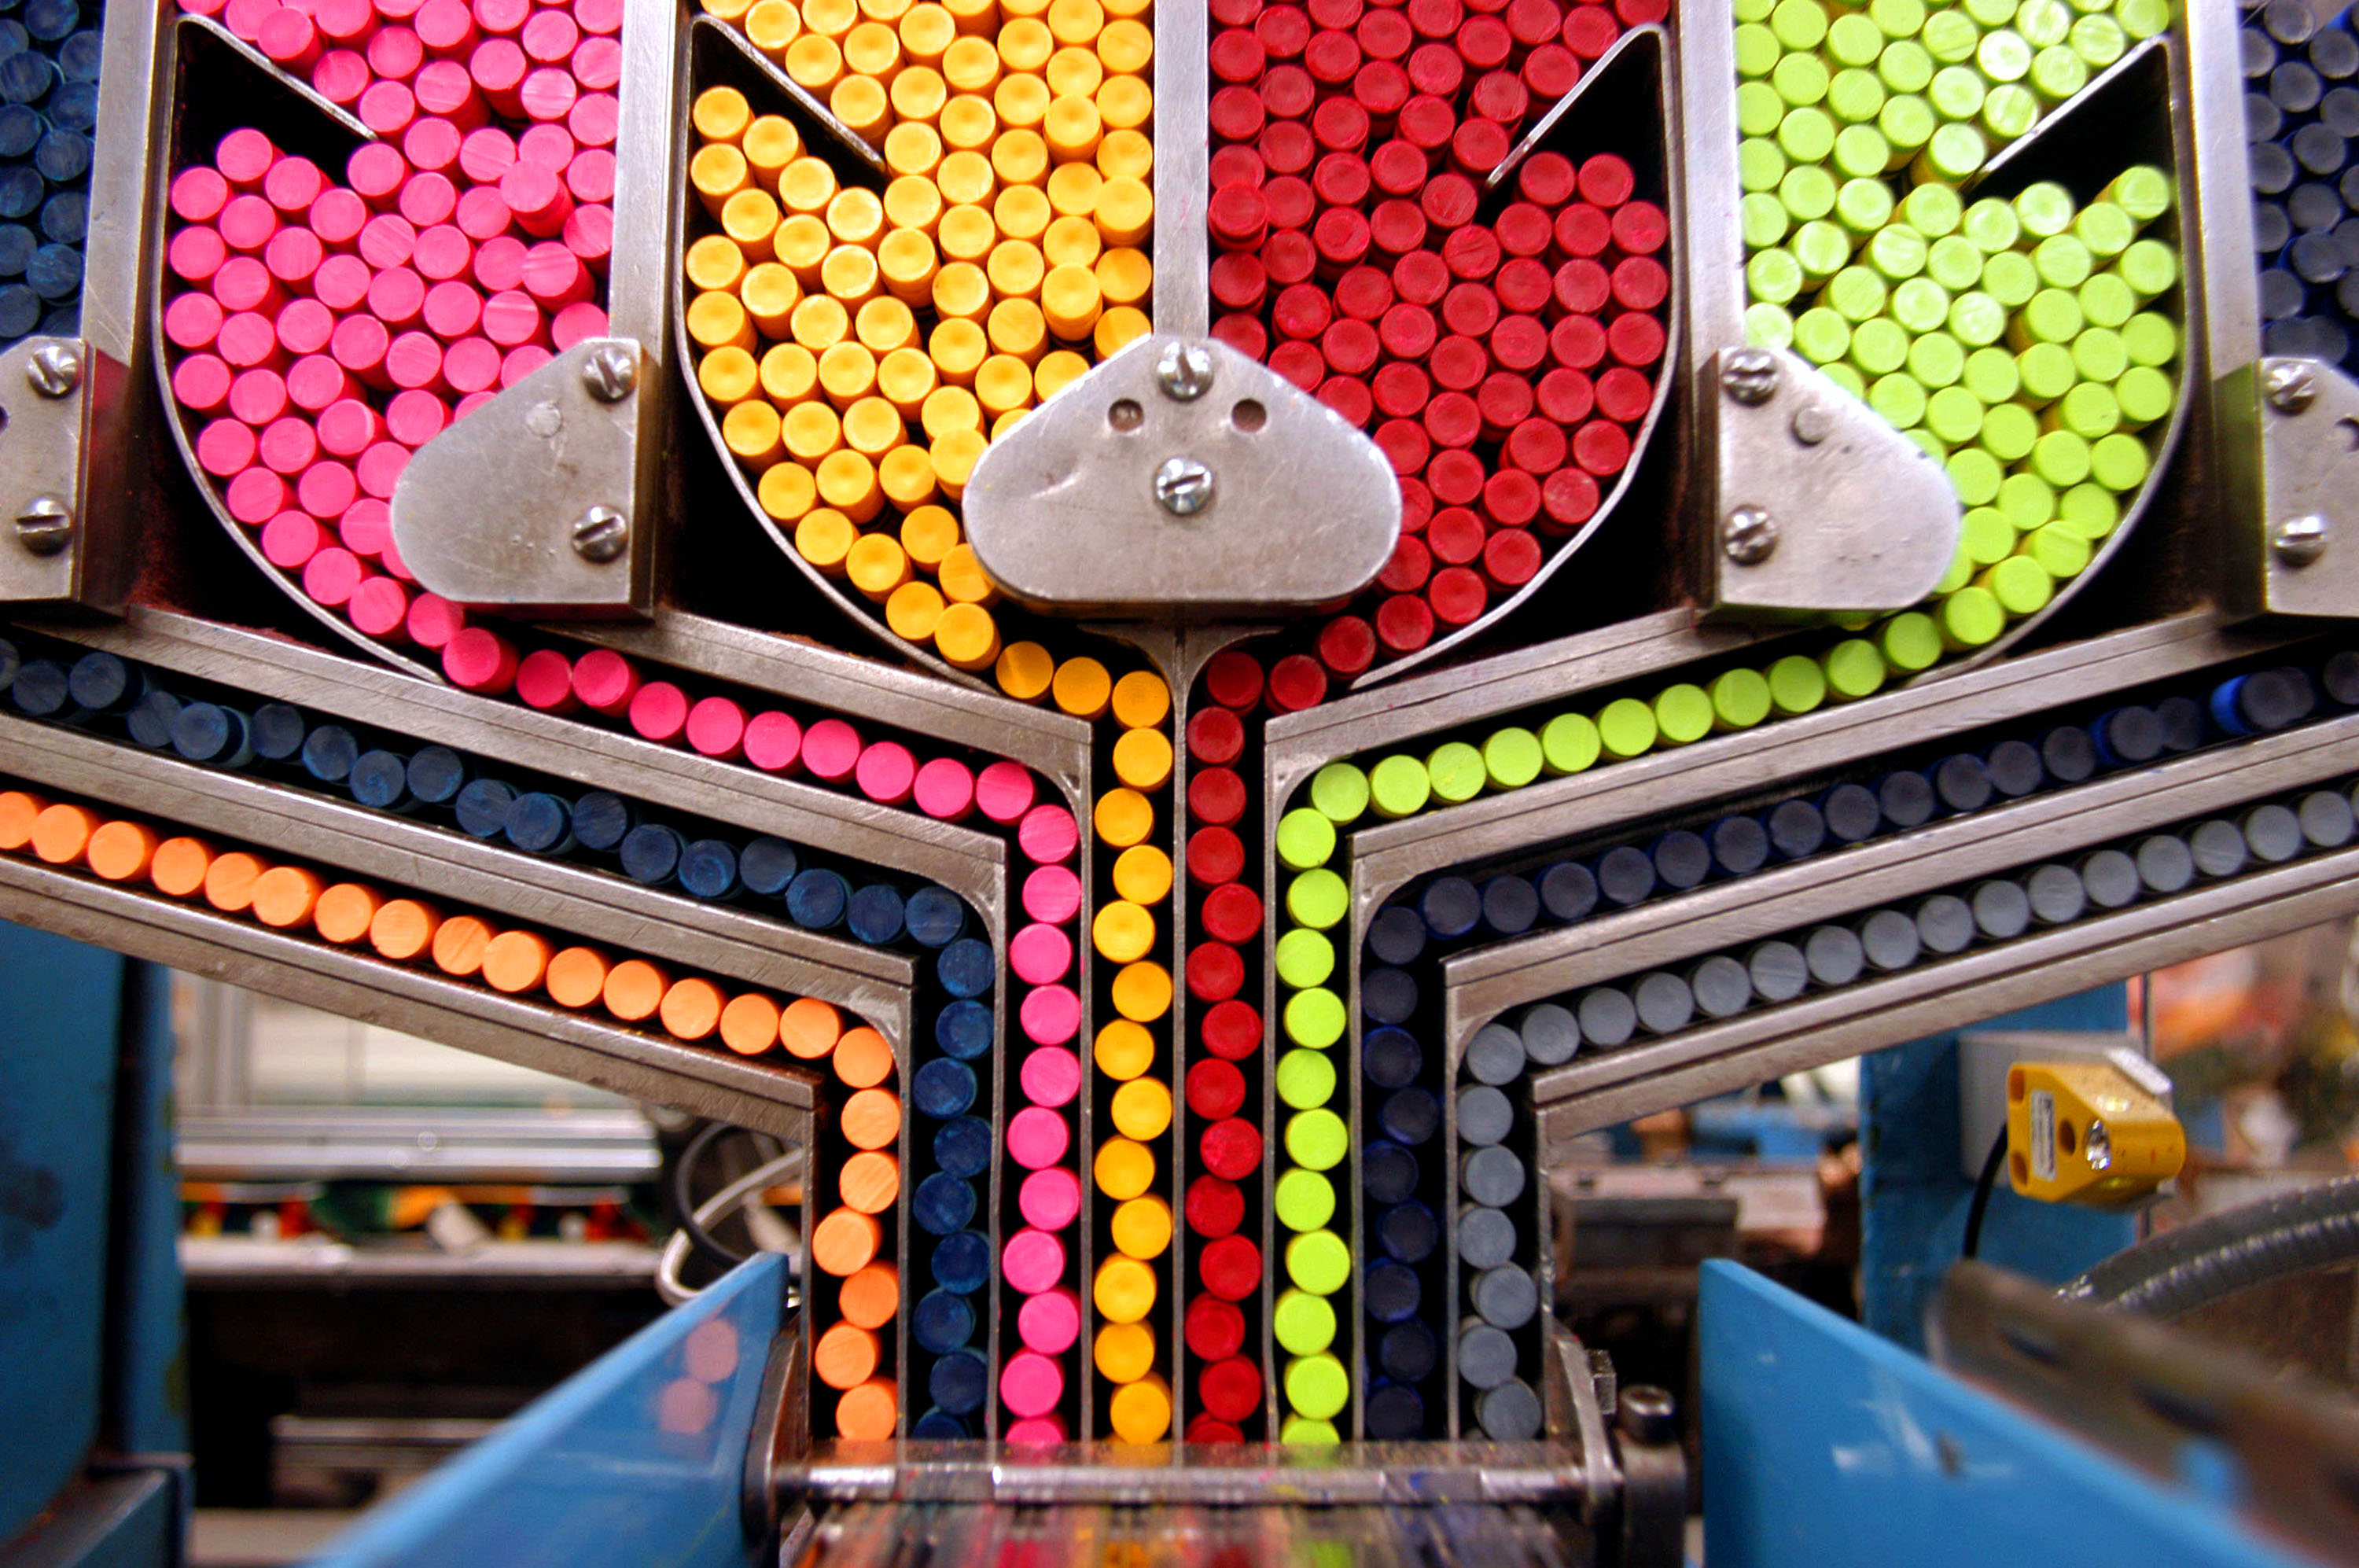 Crayola Gets Hacked On Facebook By Some Seriously Uh Colorful Posts